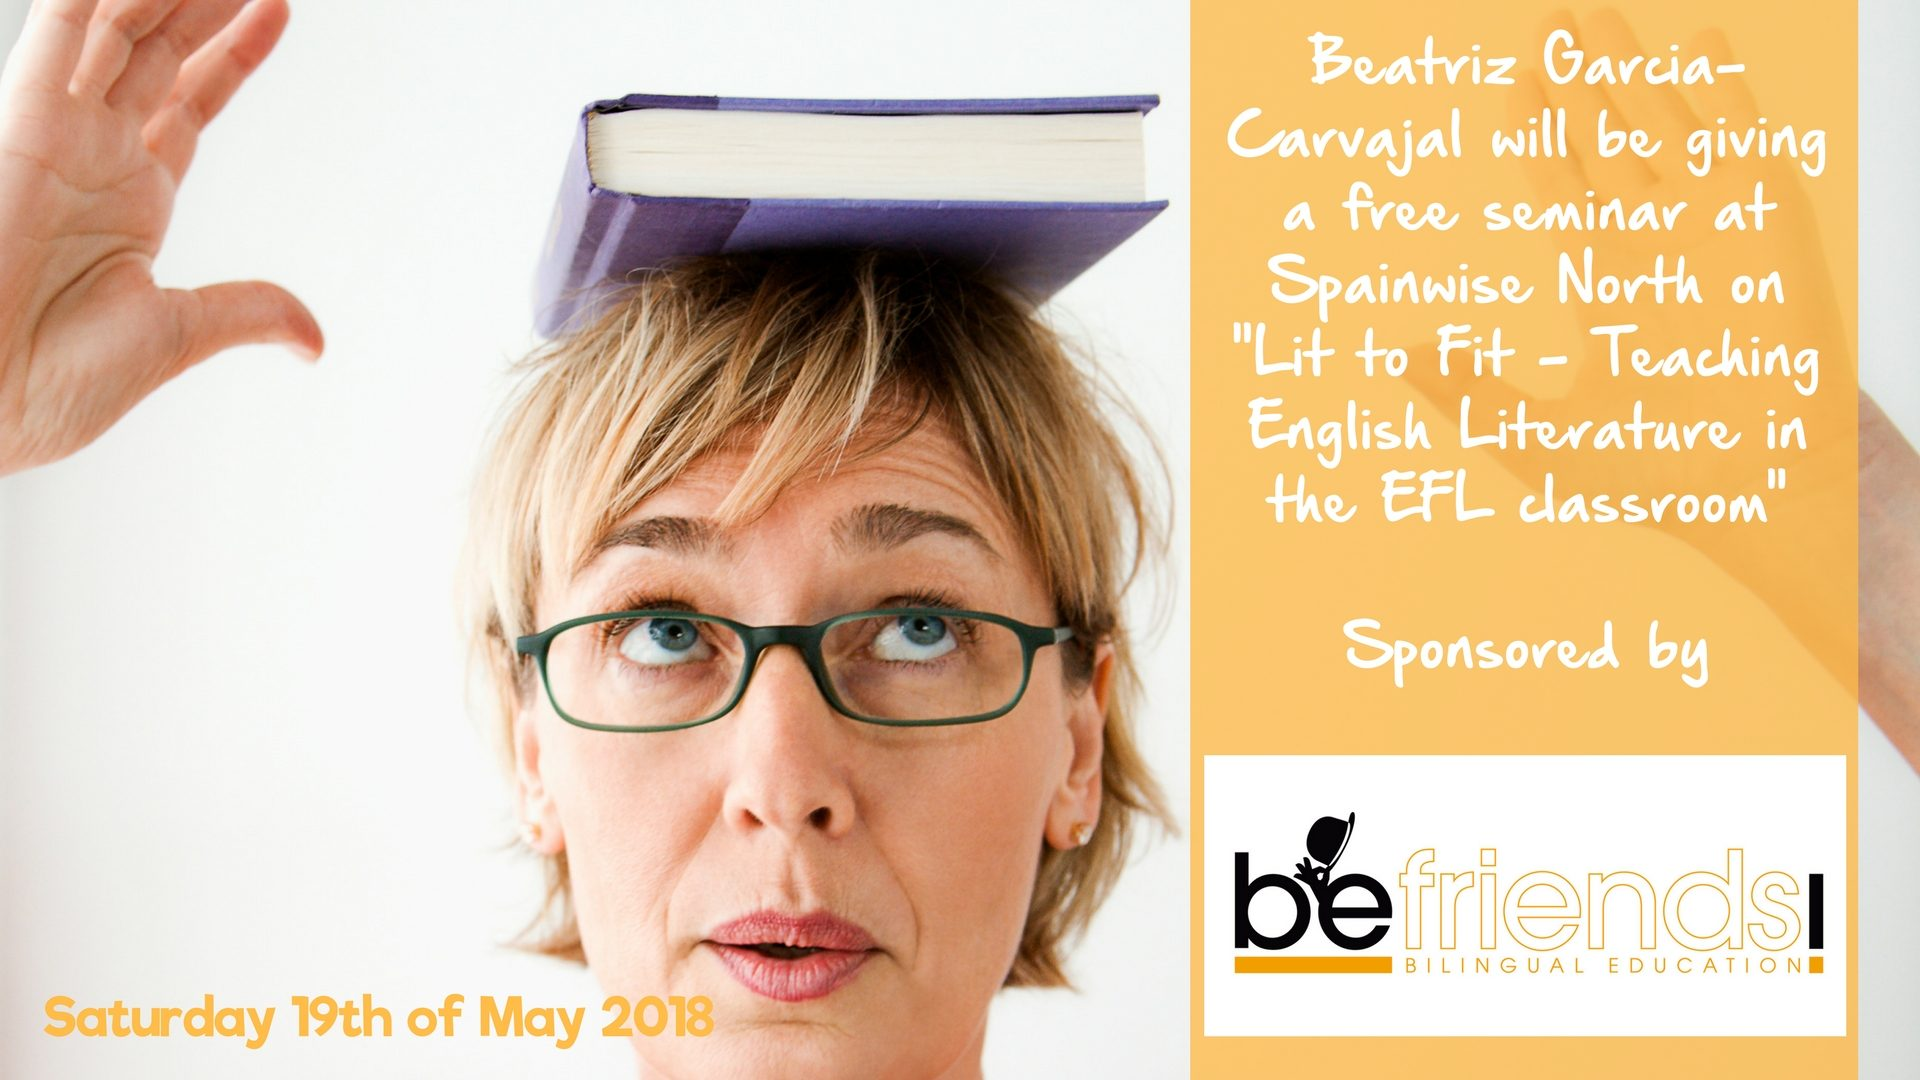 Lit to Fit- Teaching English Literature in the EFL Classroom